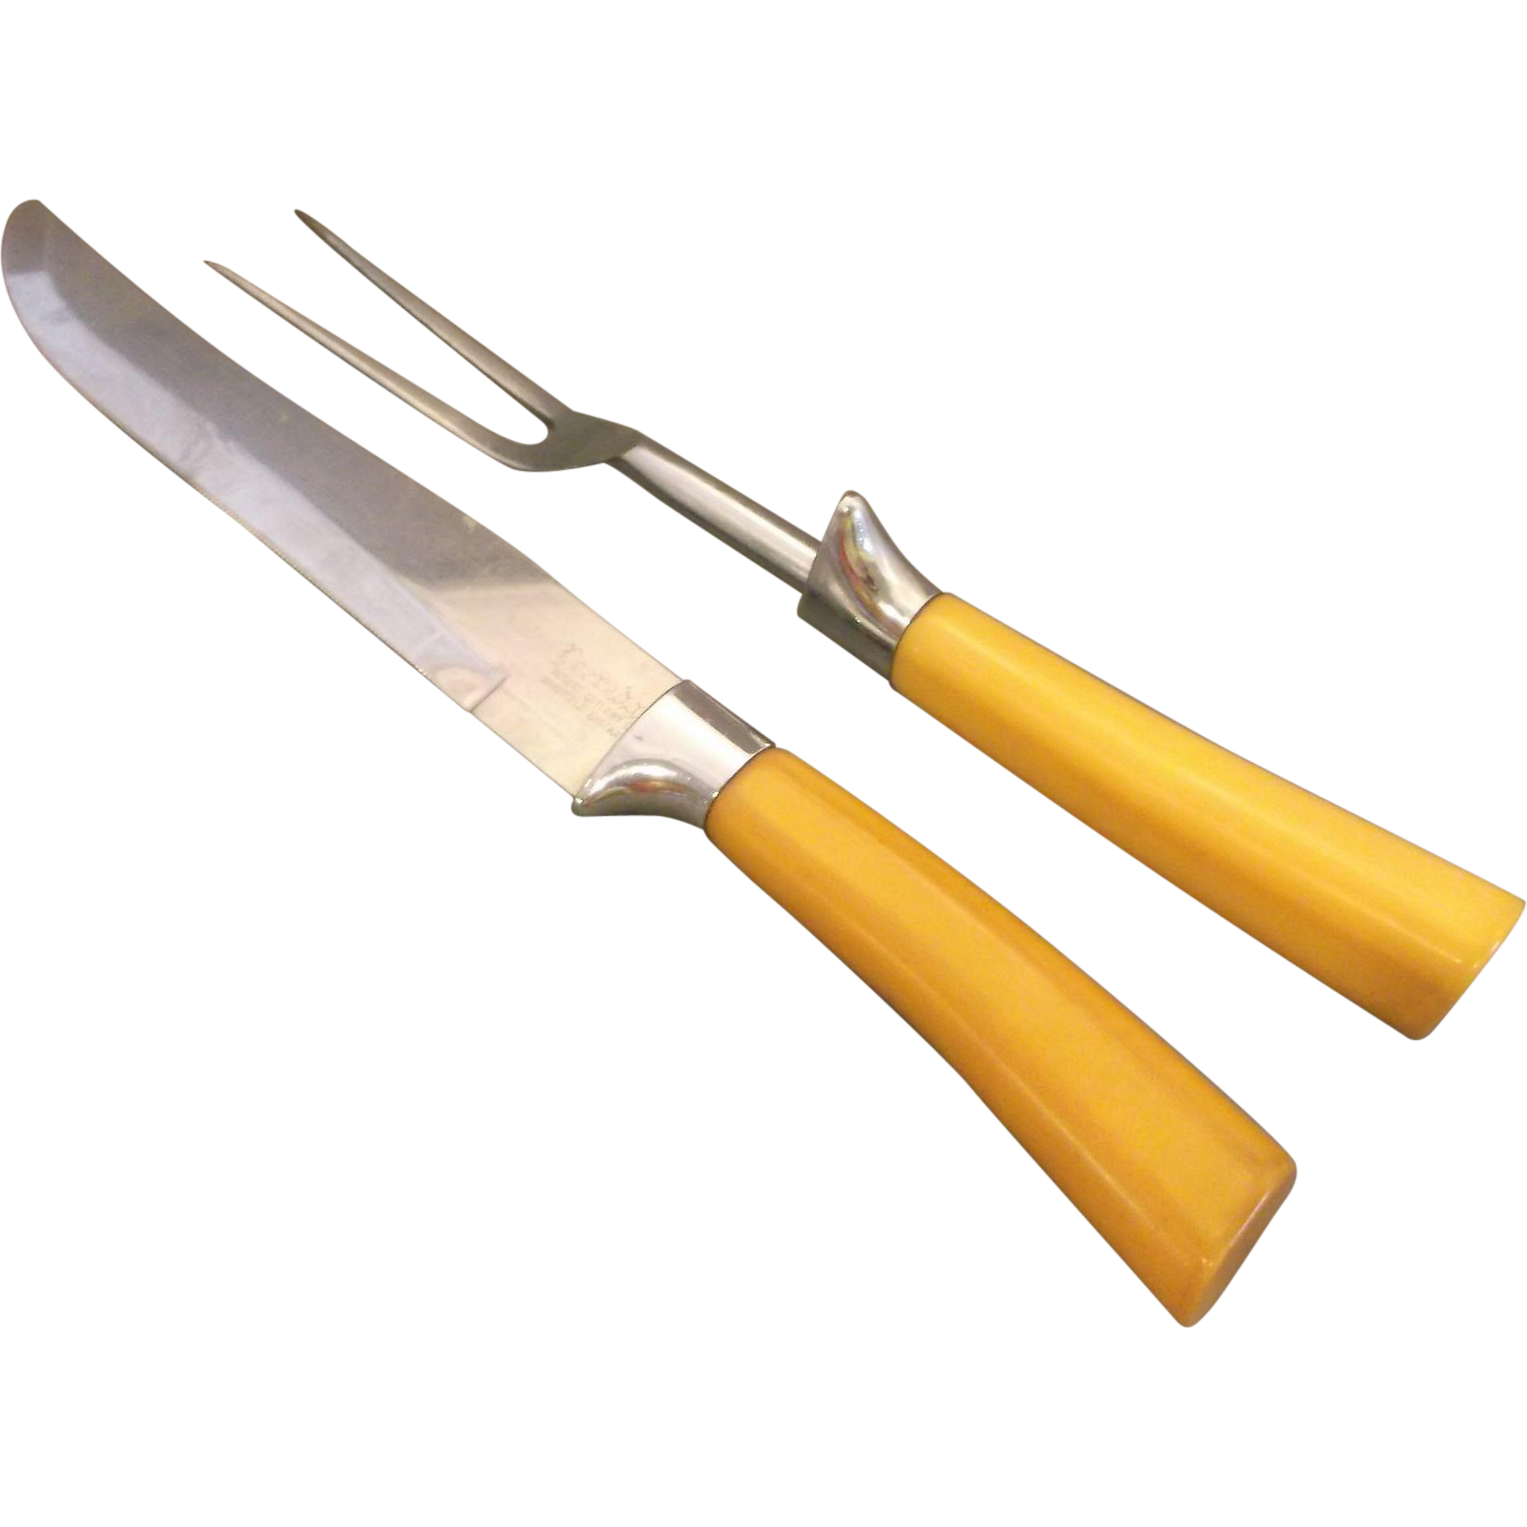 Peeredge Regent Cutlery Co. Sheffield England Butterscotch Mustard Bakelite Handles Stainless Steel Carving Knife Fork